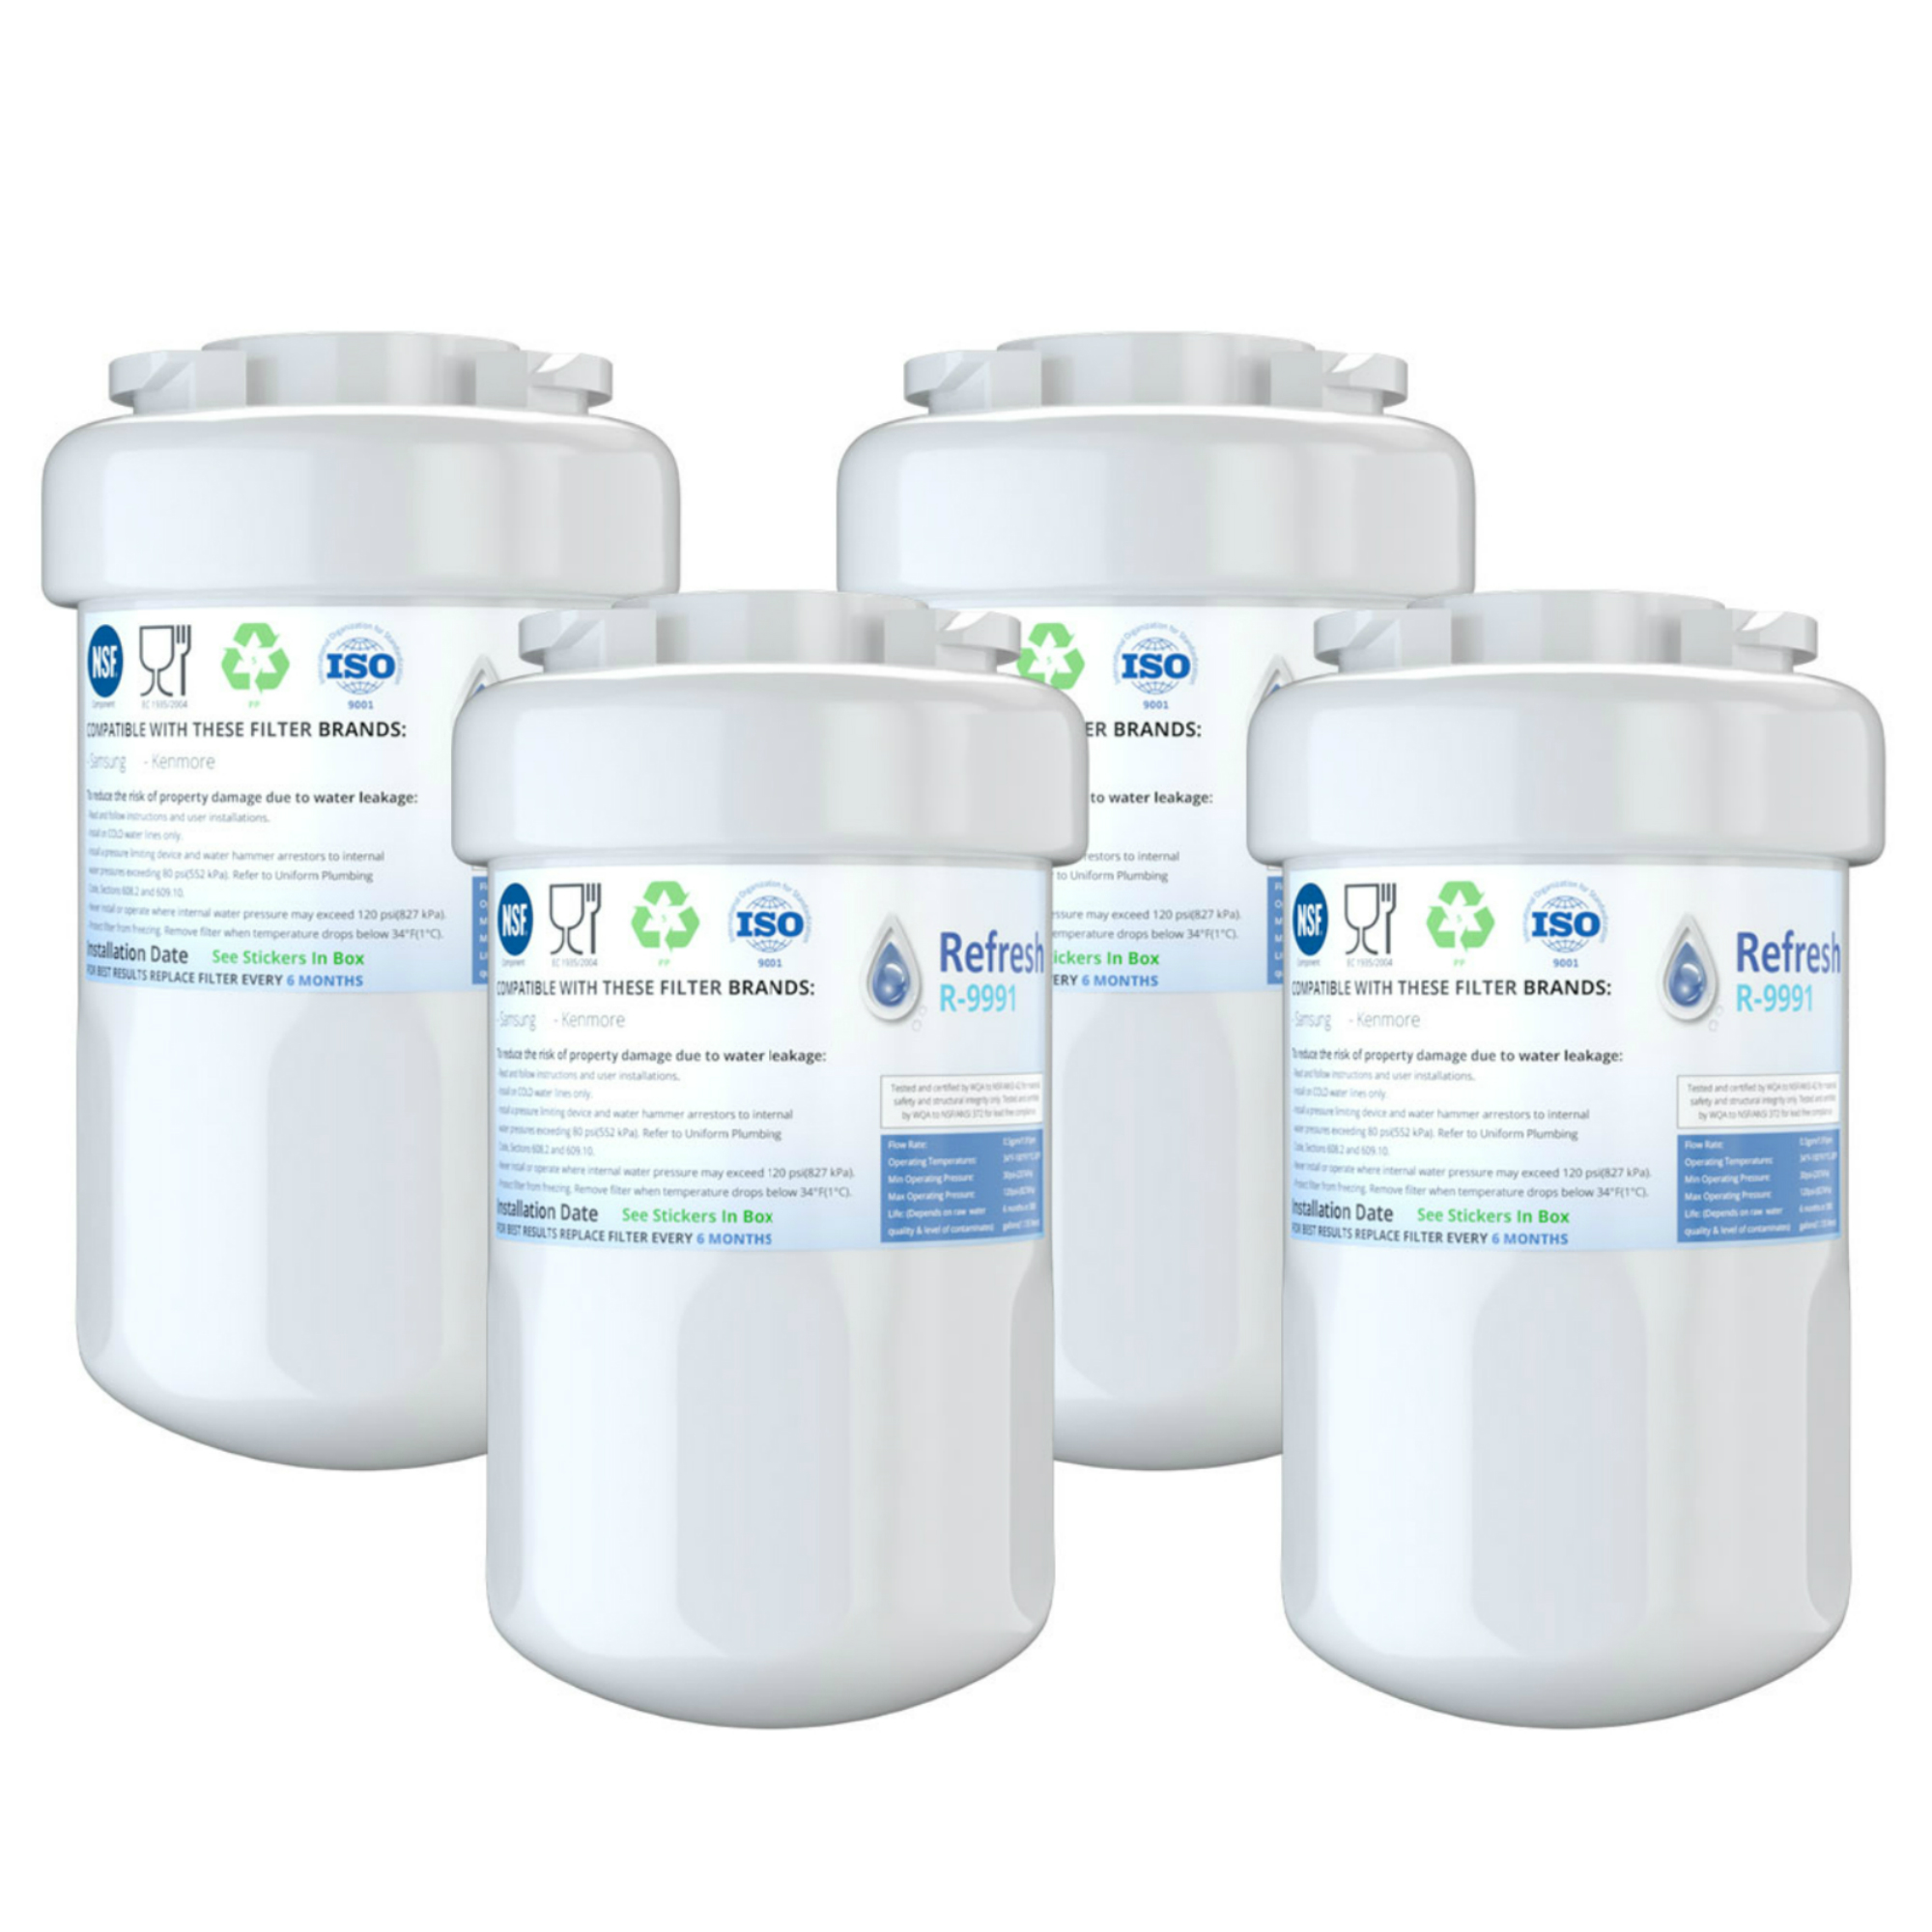 Refresh Replacement for GE MWF SmartWater MWFA MWFP GWF Kenmore 46-9991 Refrigerator Water Filter (4 Pack)